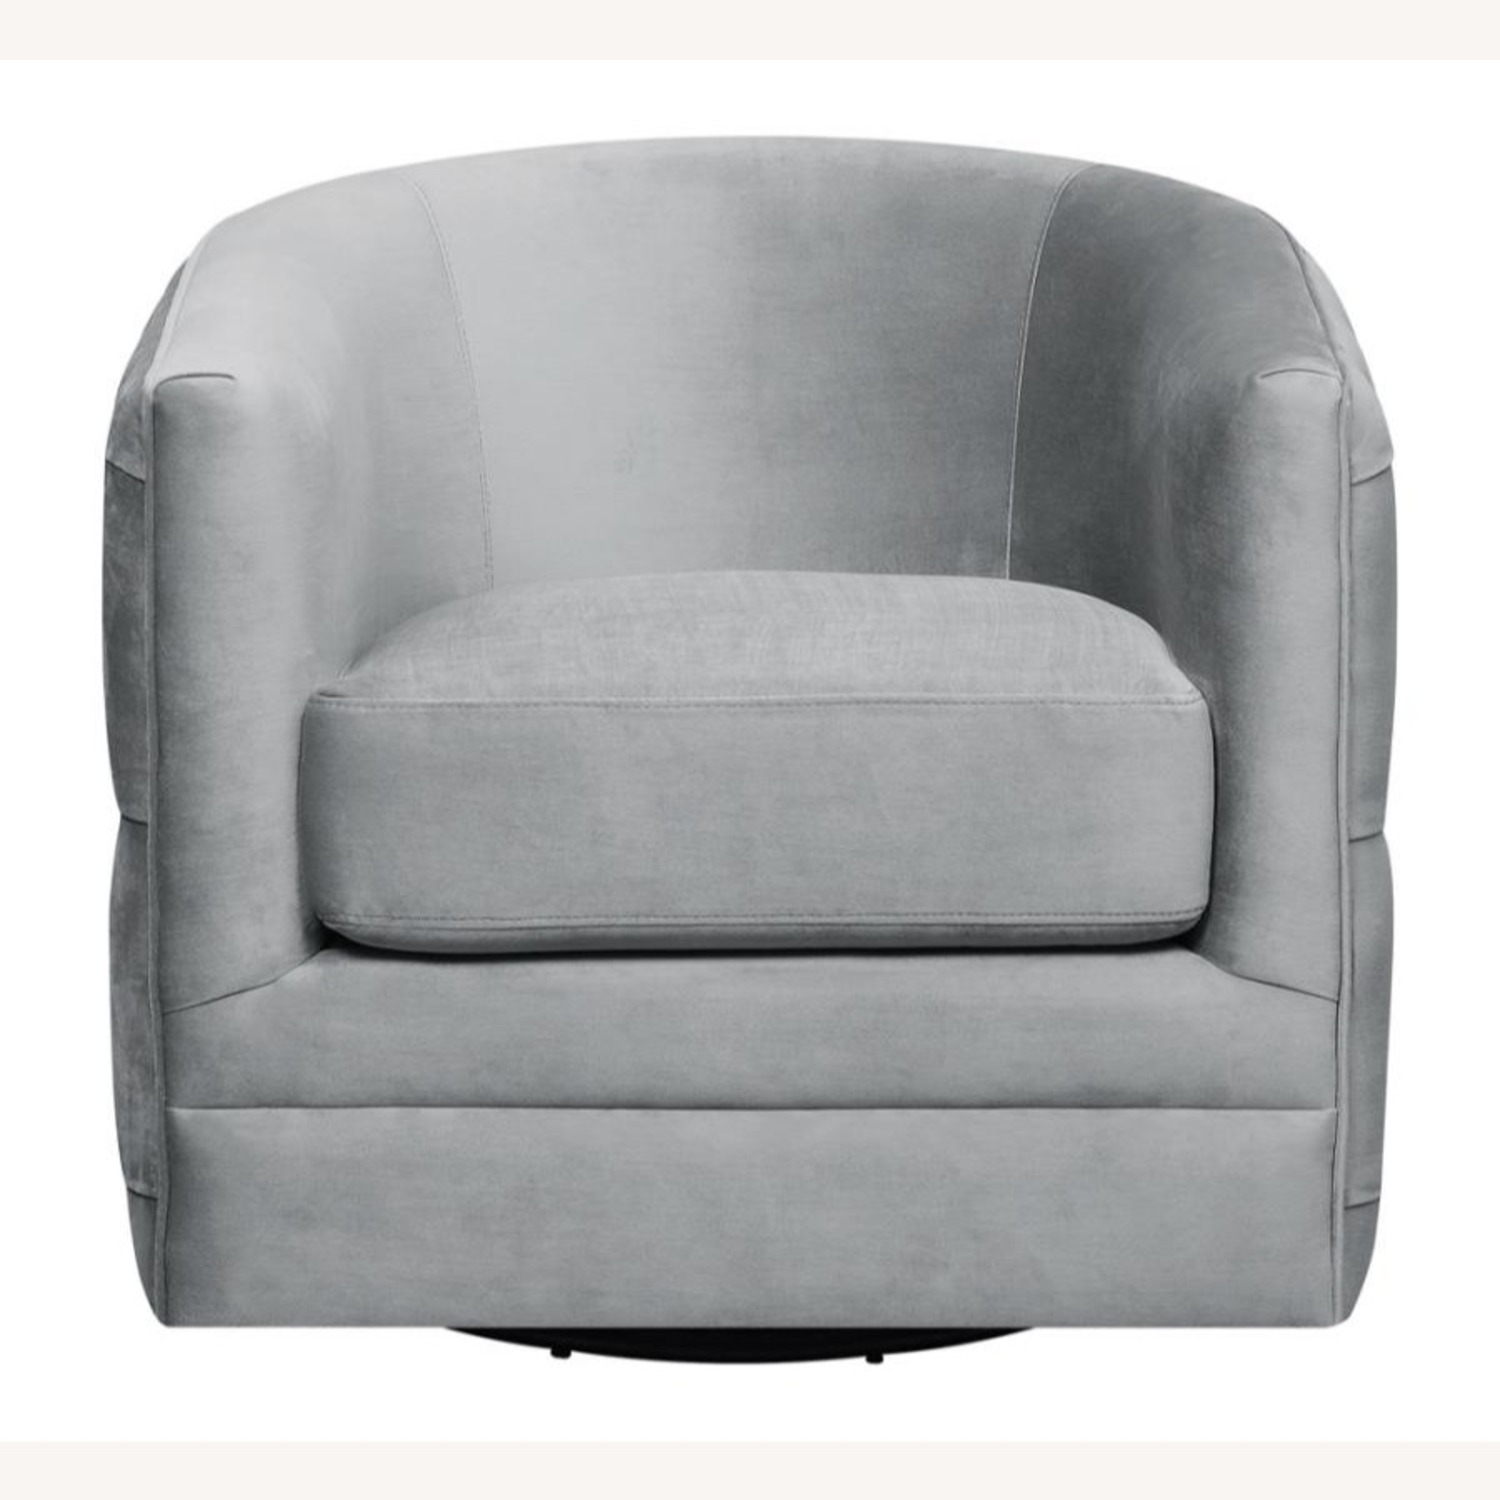 Accent Chair In Grey Velvet W/ Tufted Rhinestone - image-1